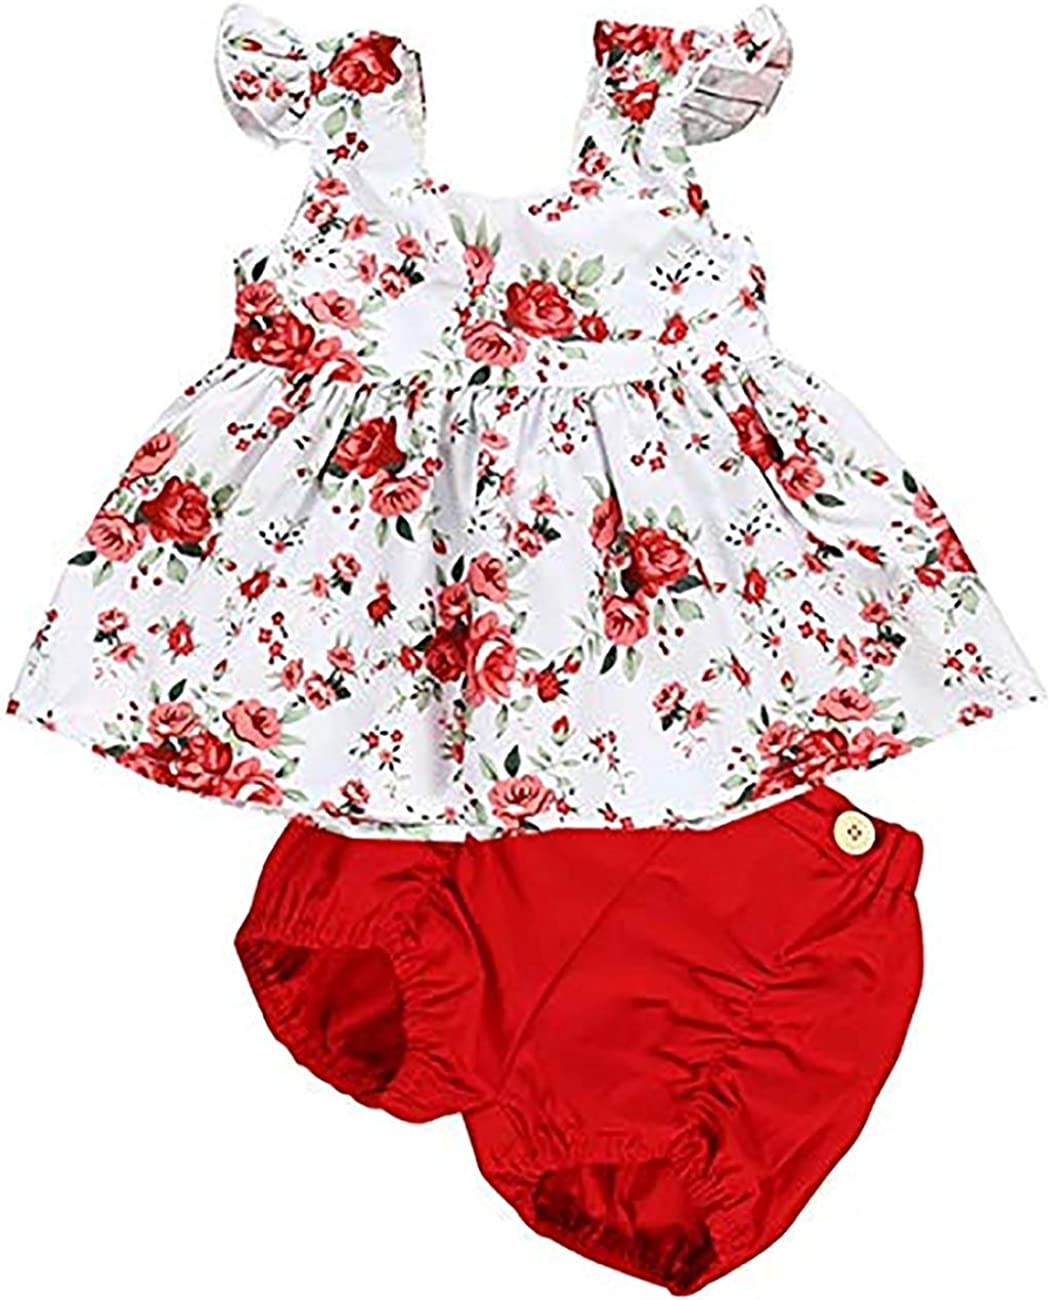 Baby Toddler Girl Clothes Infant Summer Floral Outfit Ruffle Sleeve T-Shirt with Bloomer Shorts…